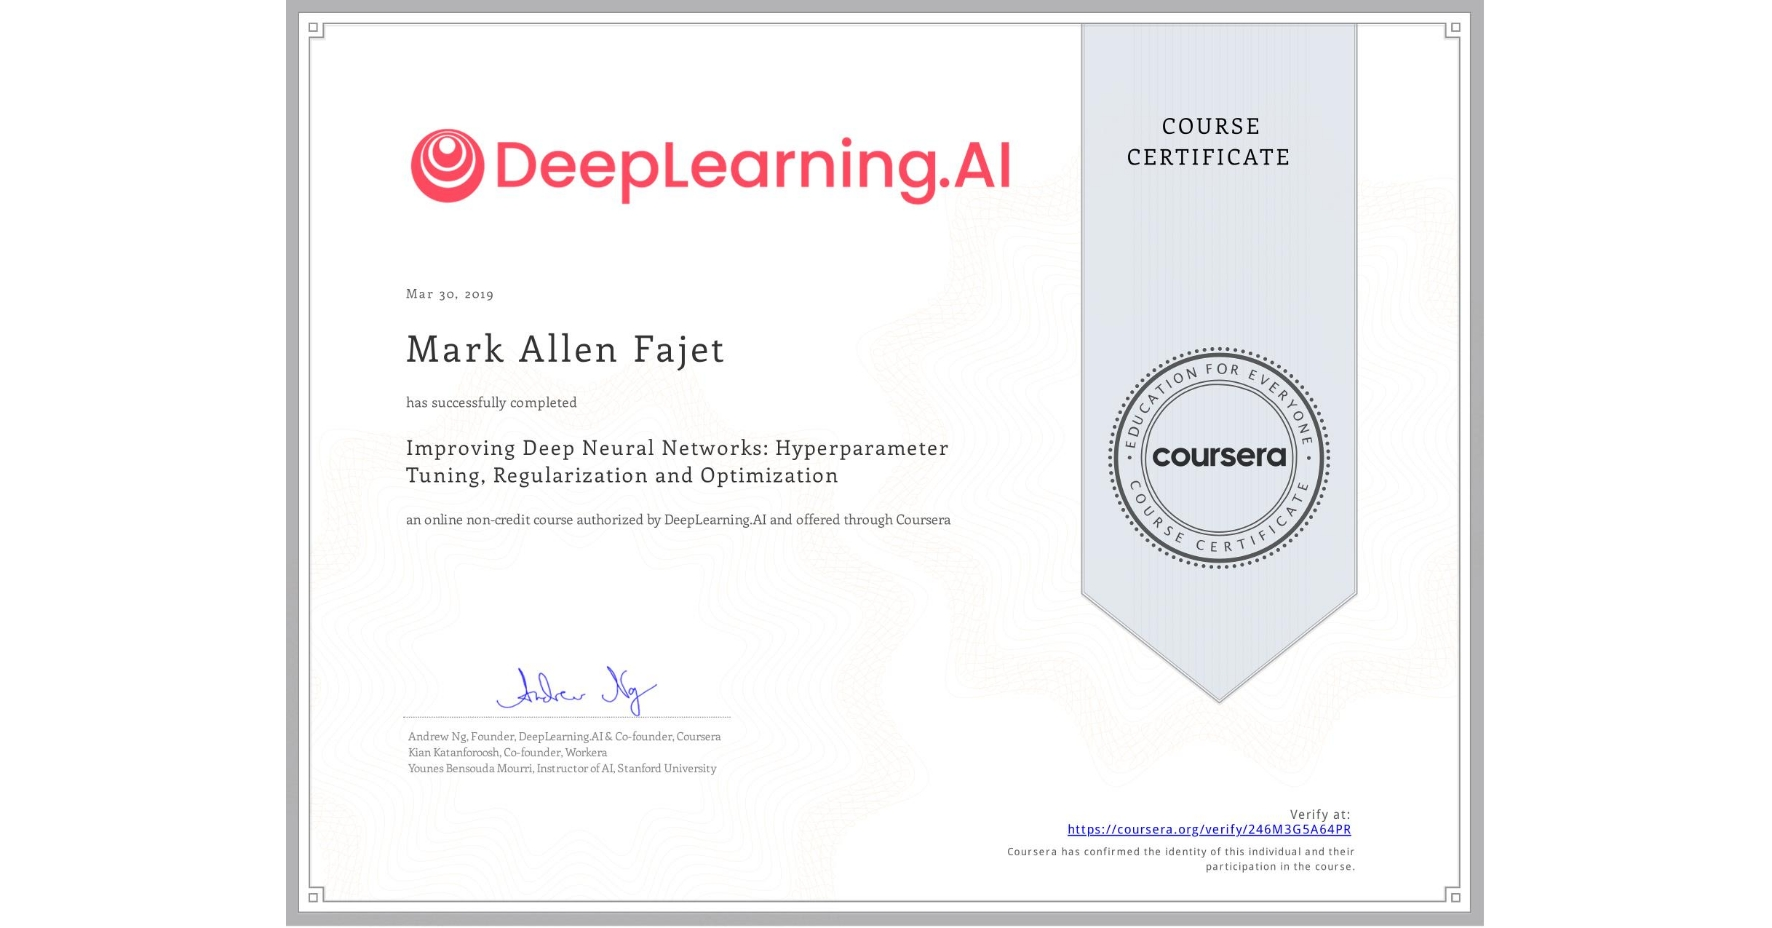 View certificate for Mark Allen Fajet, Improving Deep Neural Networks: Hyperparameter Tuning, Regularization and Optimization, an online non-credit course authorized by DeepLearning.AI and offered through Coursera